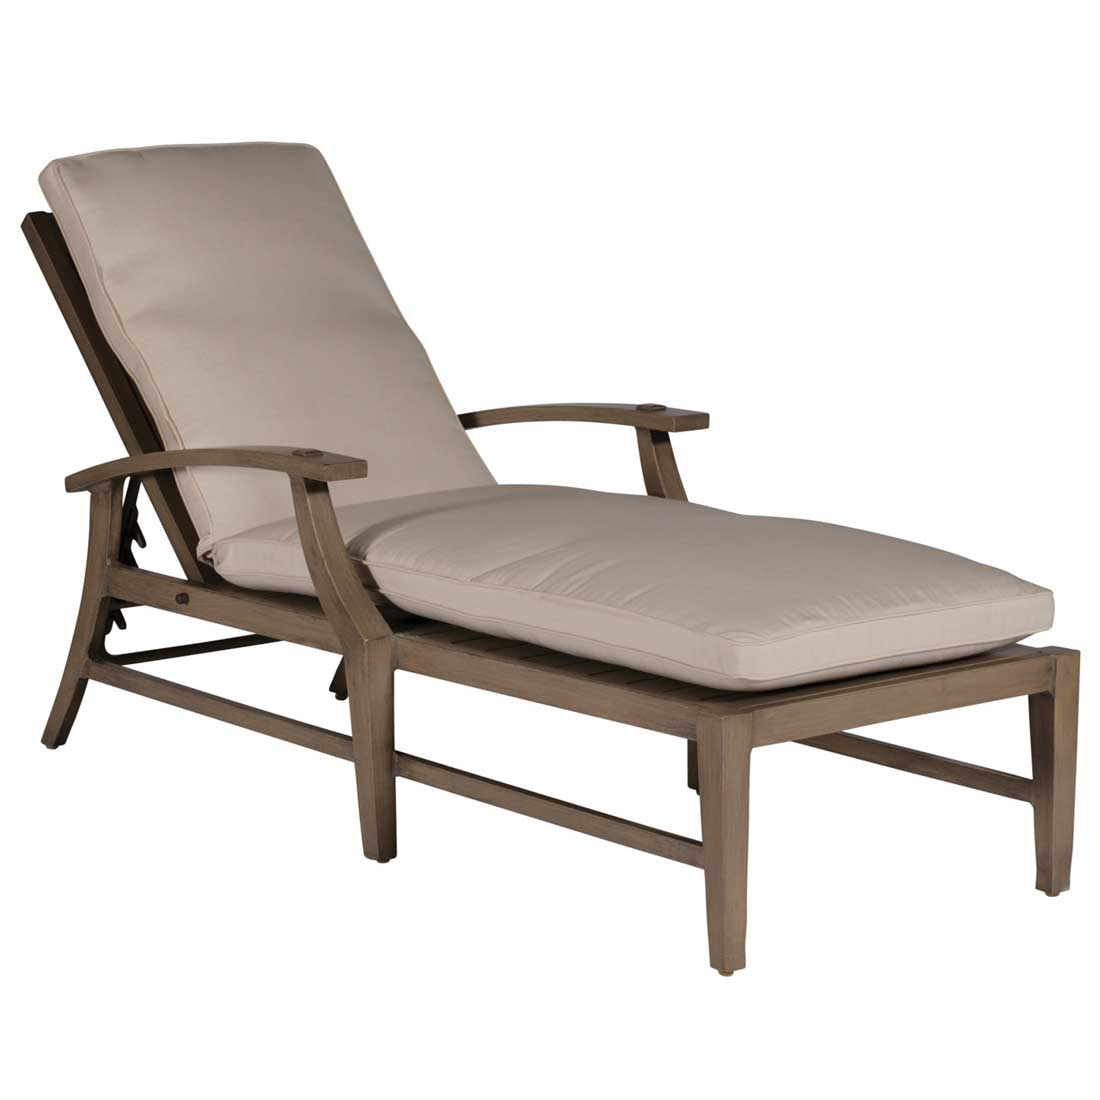 Croquet aluminum chaise lounge for Aluminum chaise lounges